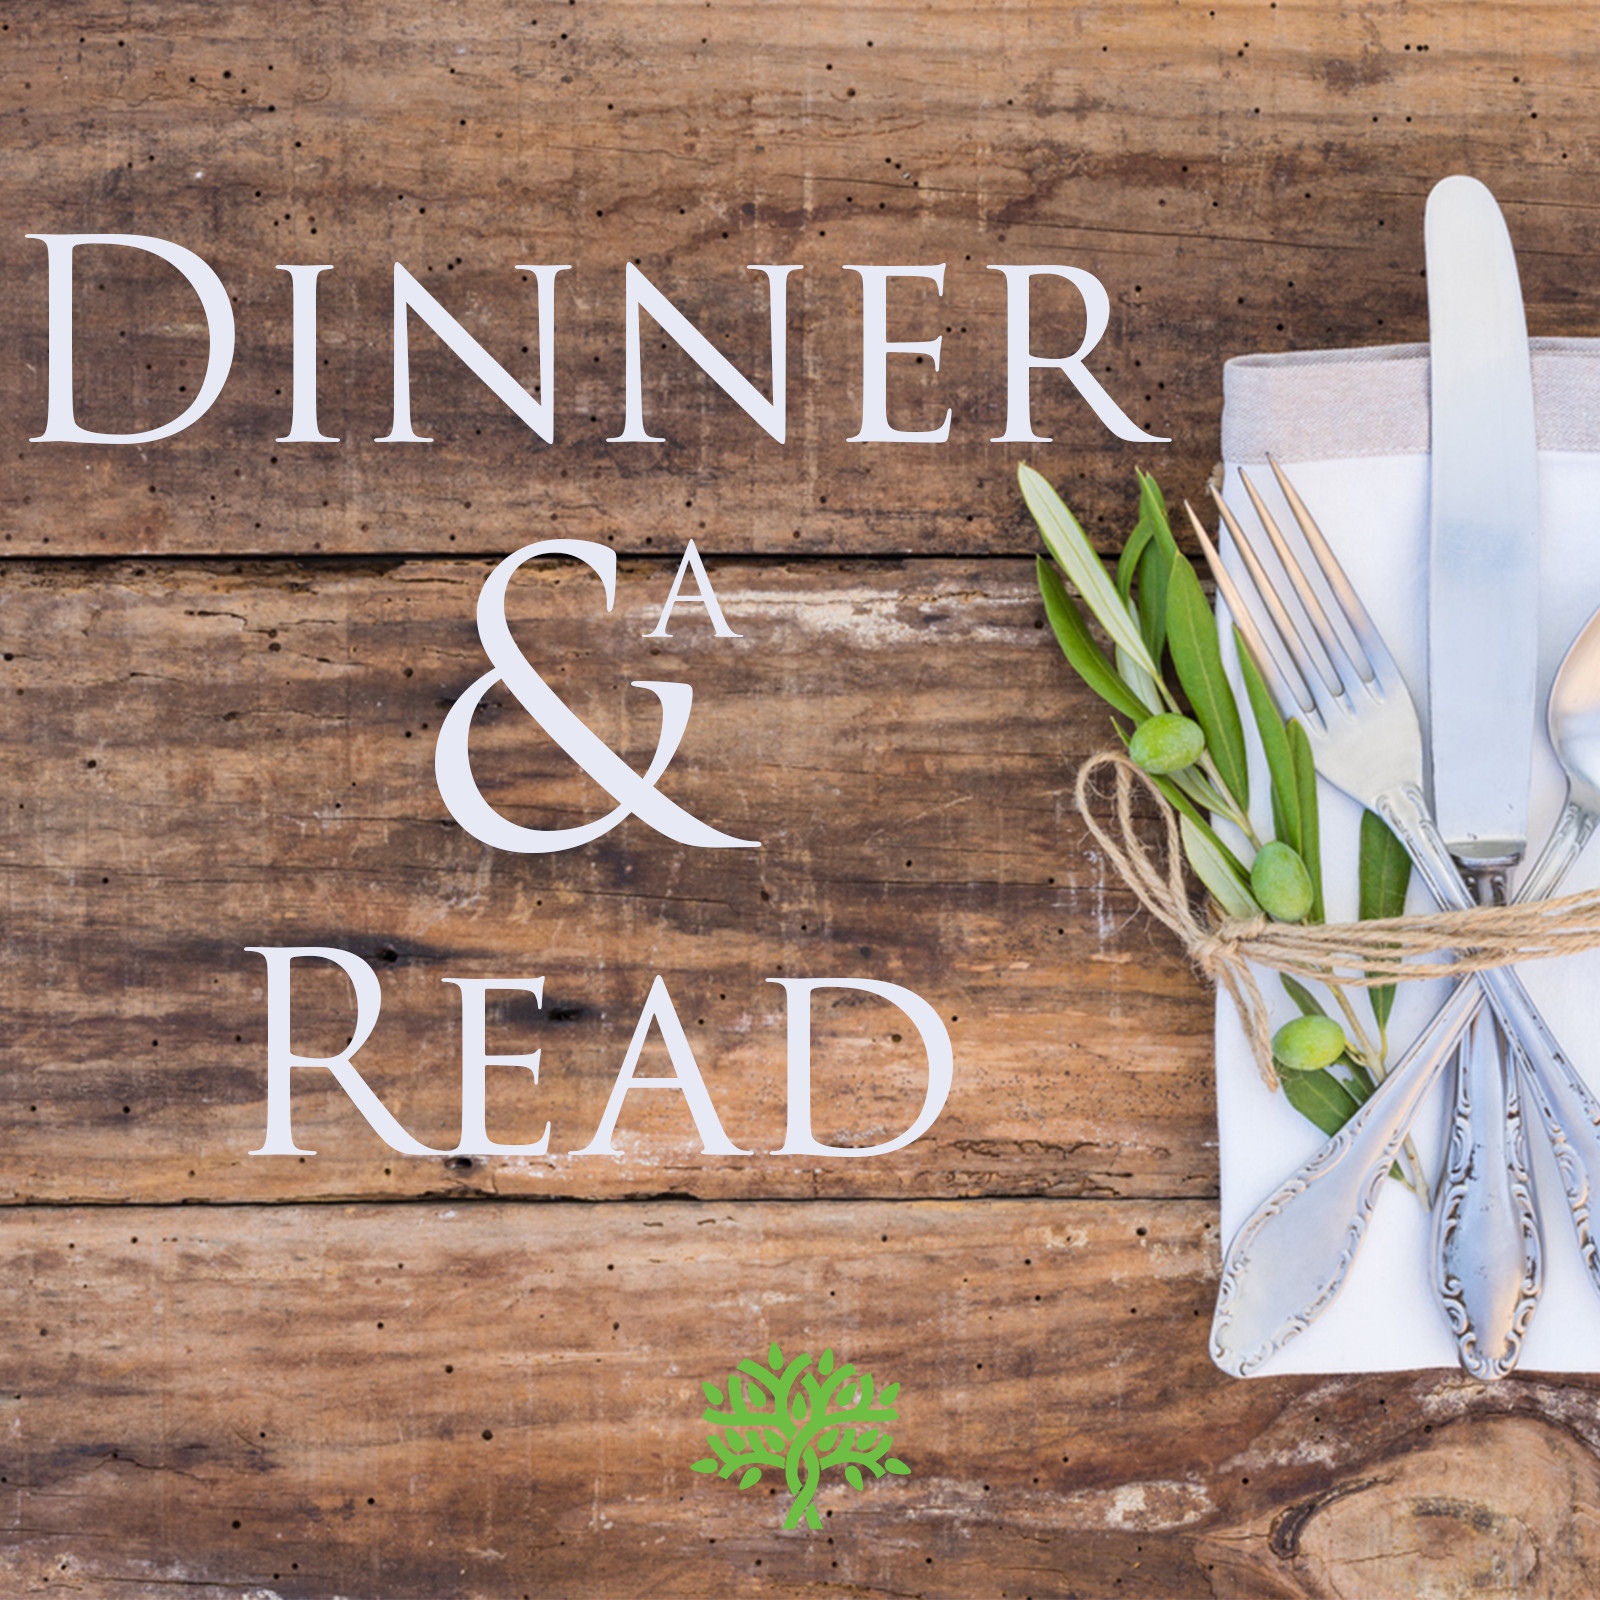 DinnerAndRead image